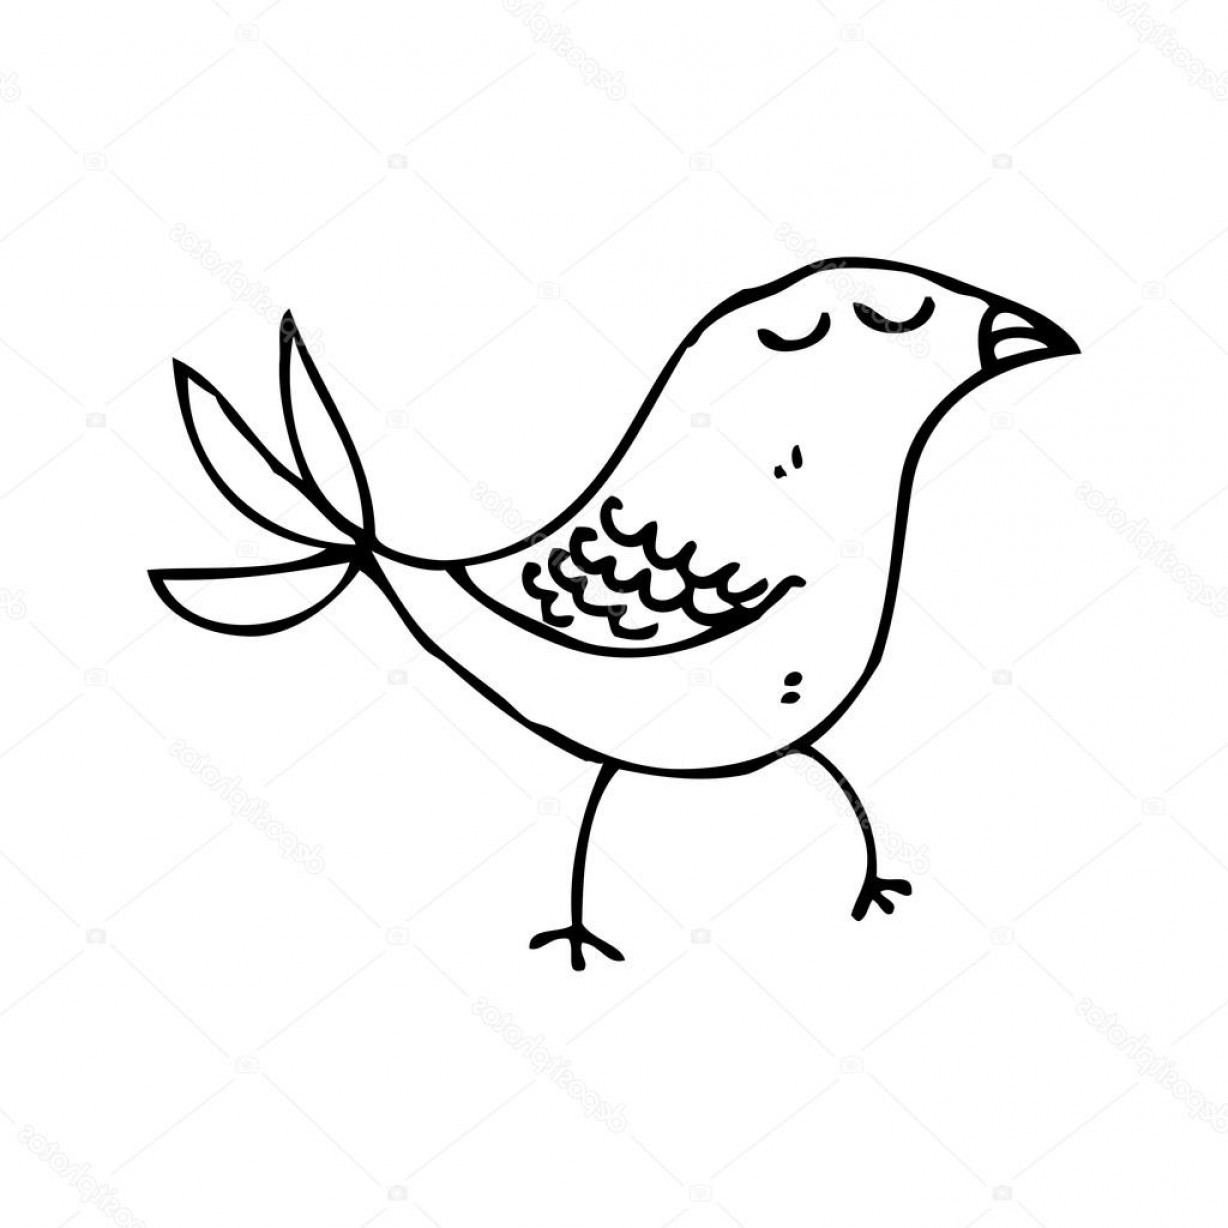 Scratch Y Drawing Vector: Stock Illustration Scratchy Line Bird Drawing